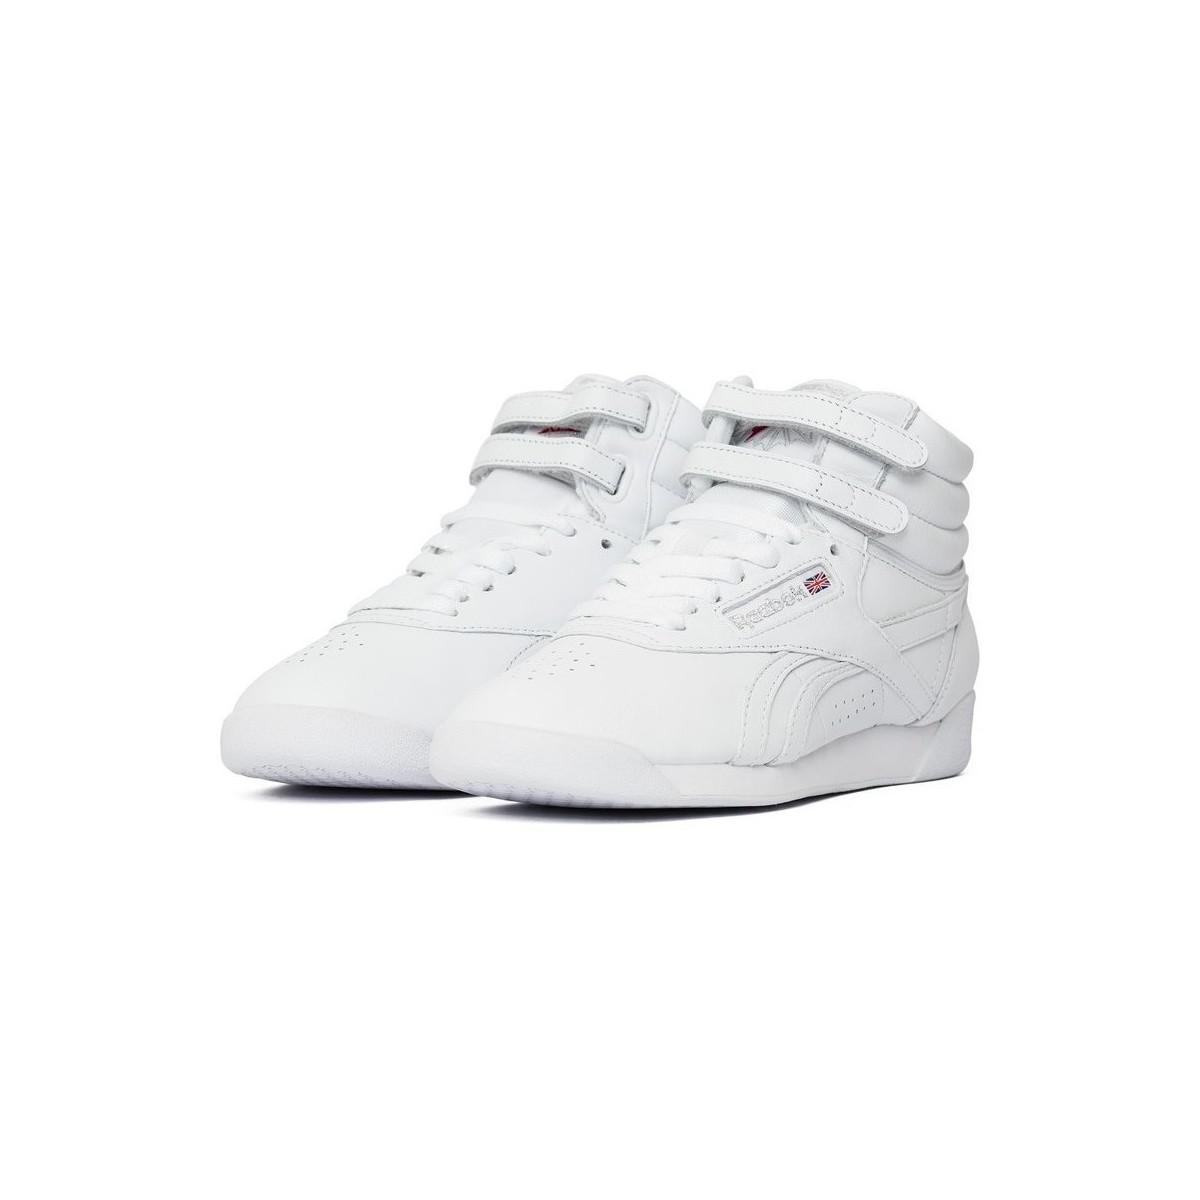 154cc047b2e47 Reebok - Freestyle Hi Og Lux 35th Anniversary Women s Shoes (high-top  Trainers). View fullscreen